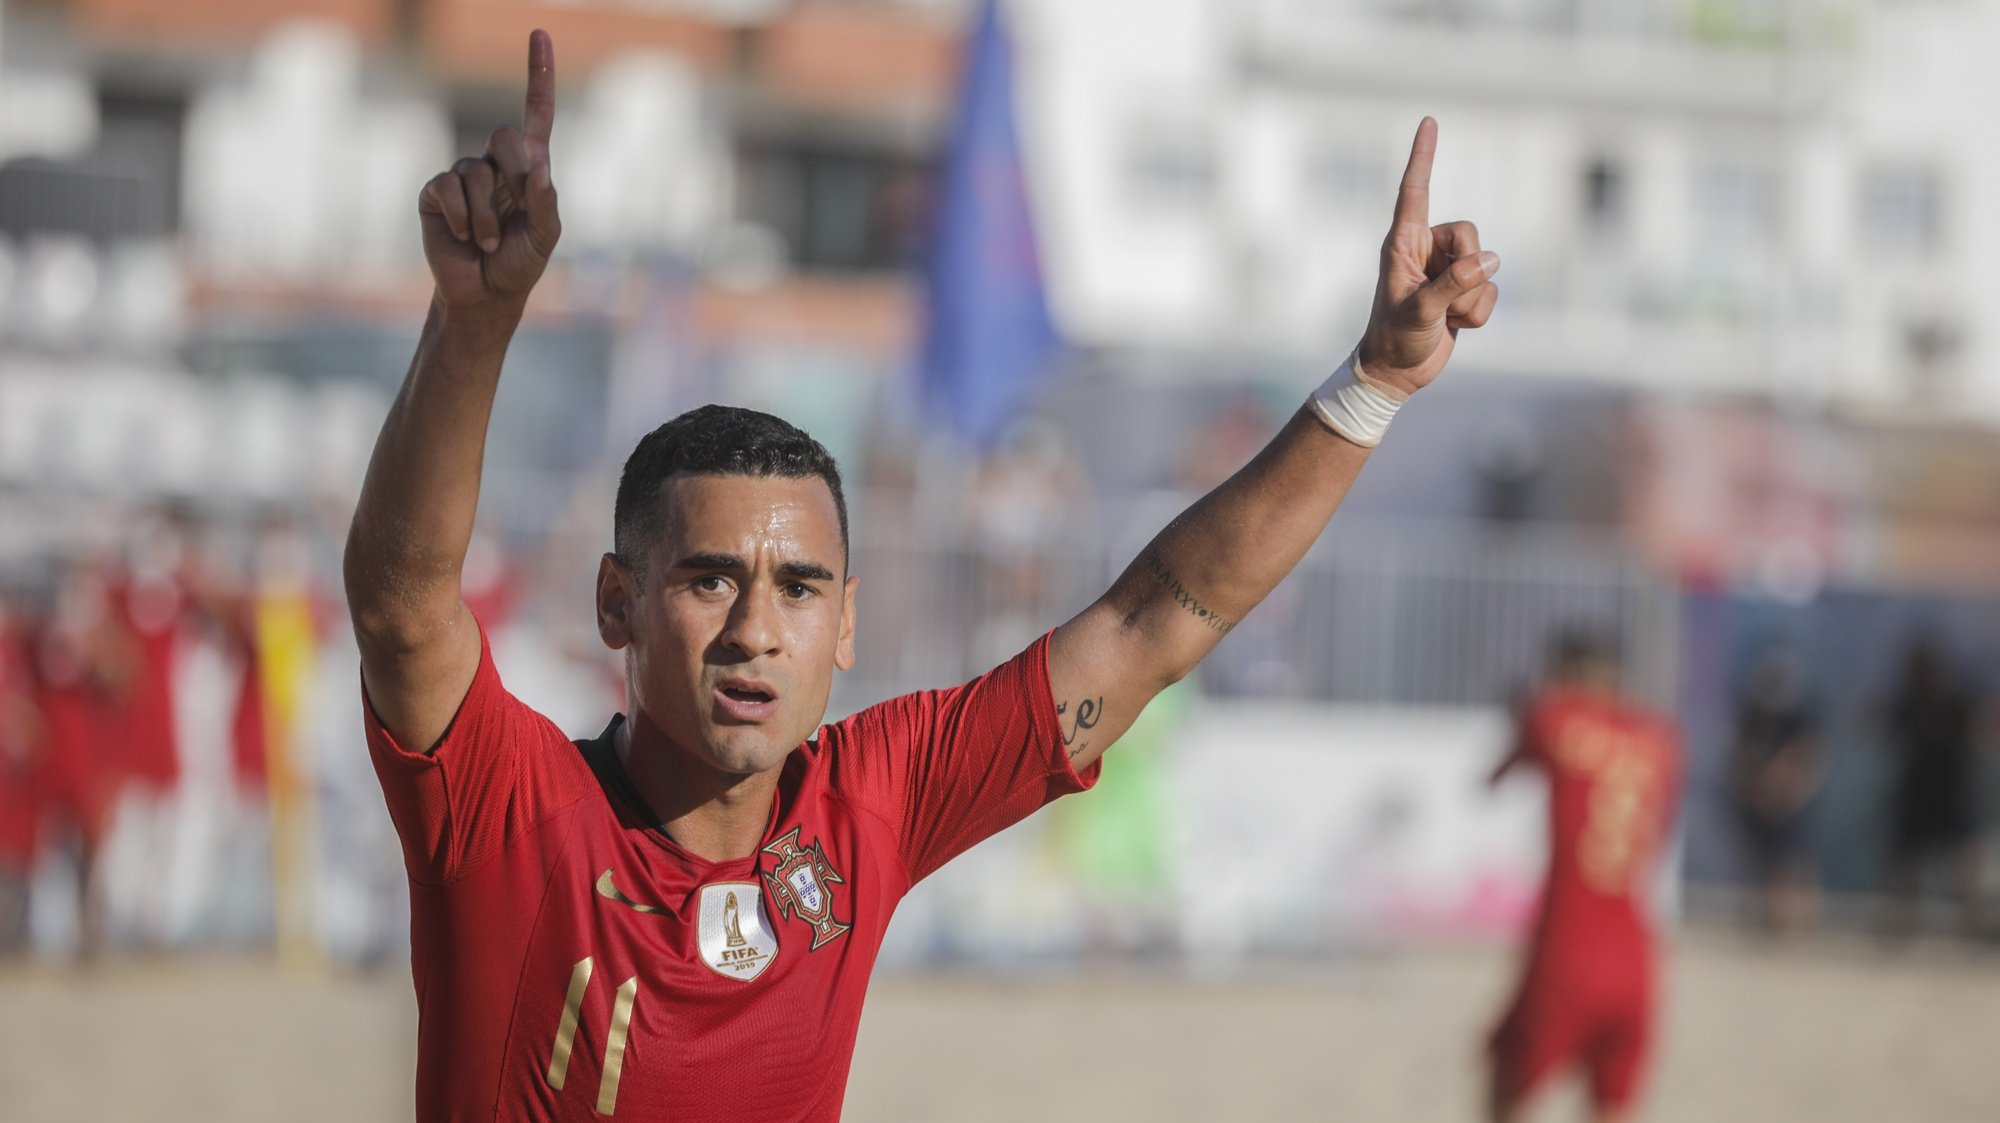 The player of the Portugal national team Leo Martins celebrates the scoring of a goal against the Swiss national team during the Superfinal of the European Beach Soccer League held at Nazare, Portugal, 6th September 2020. PAULO CUNHA/LUSA